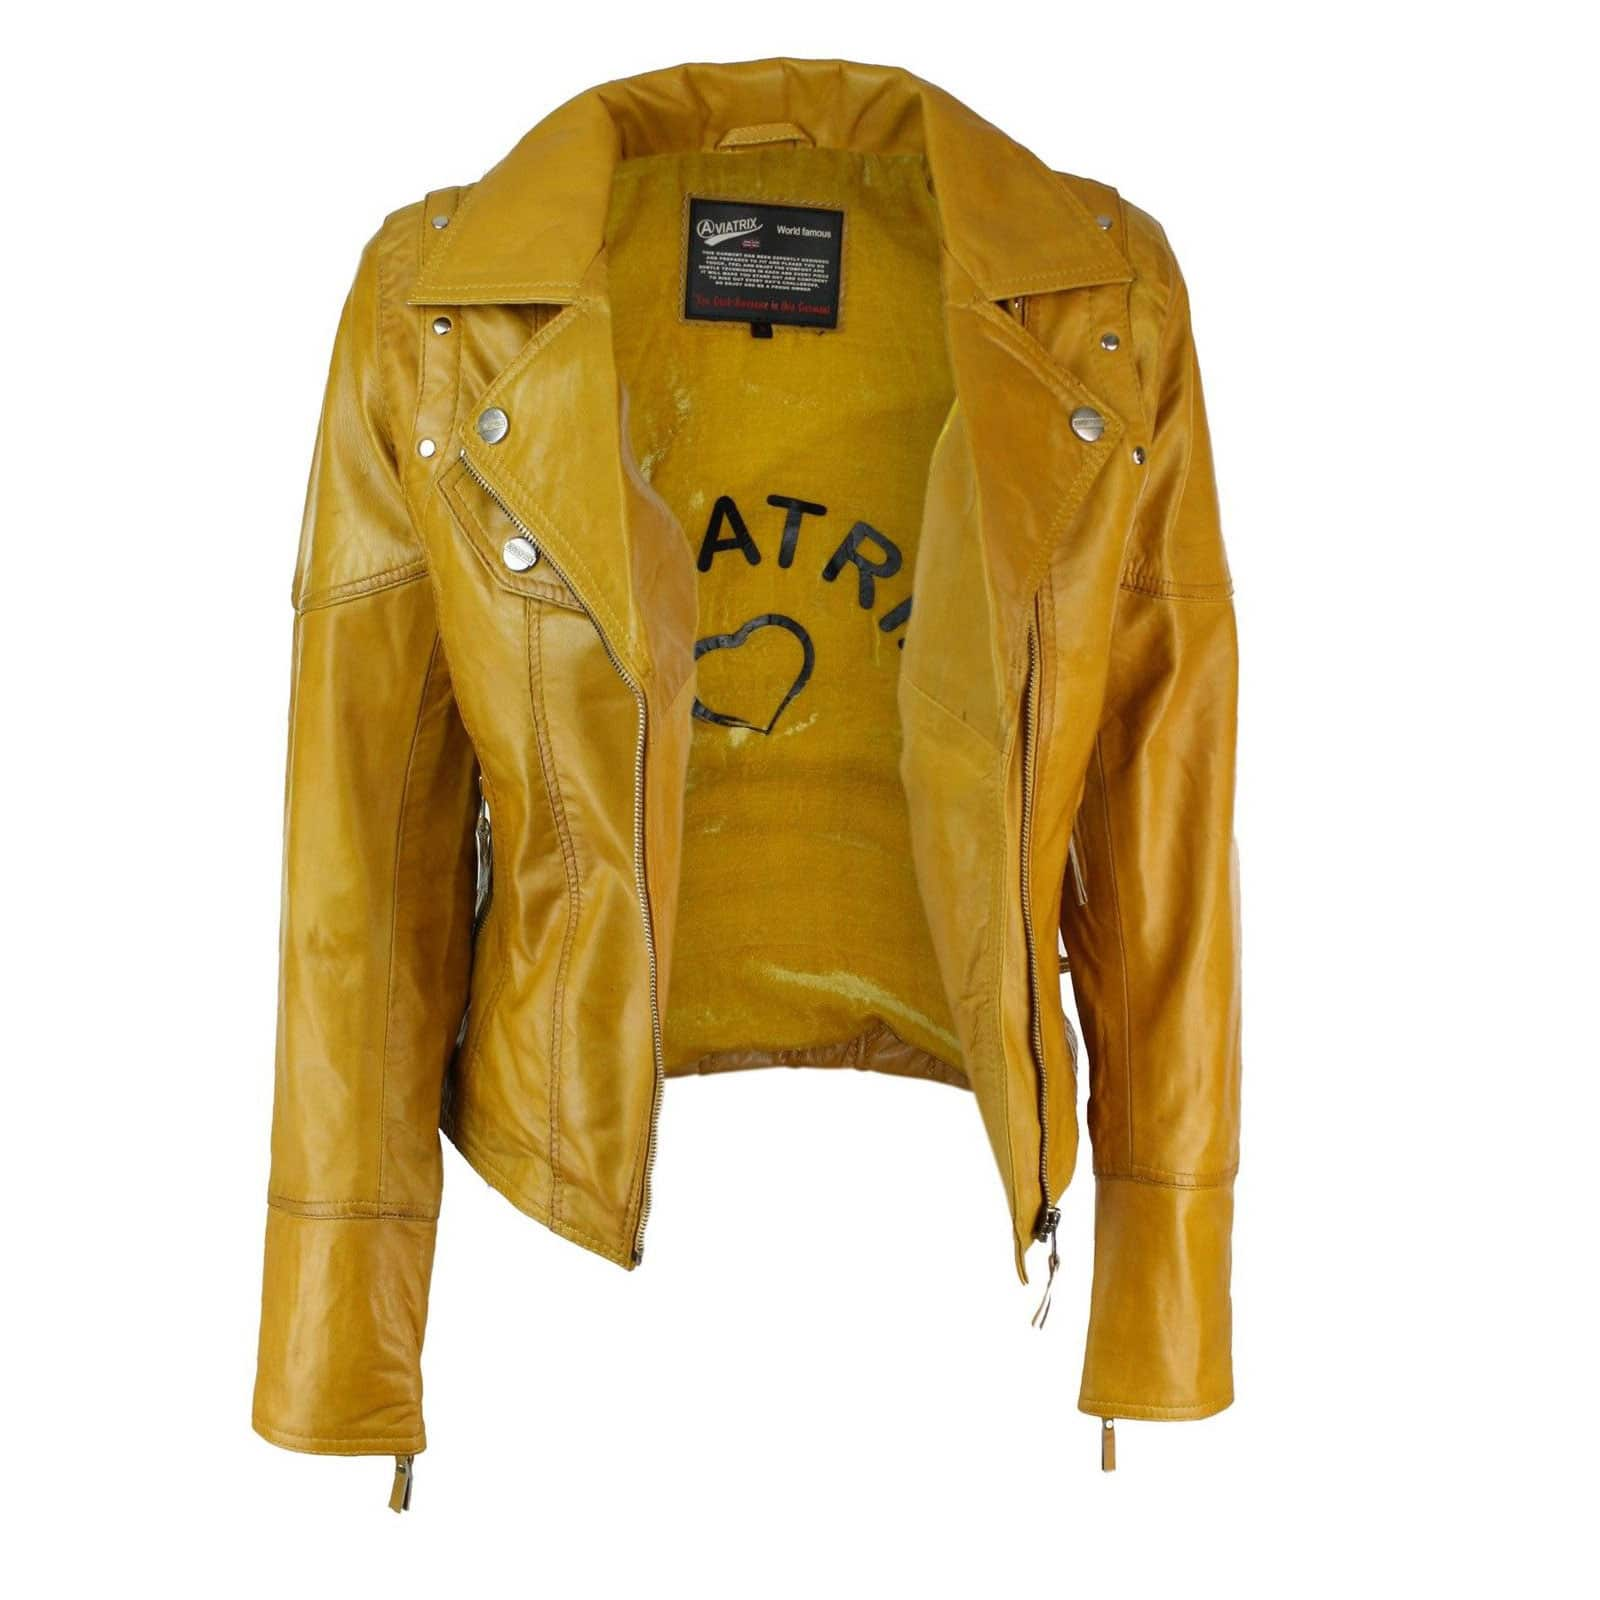 Womens Leather Motorcycle Jackets for sale